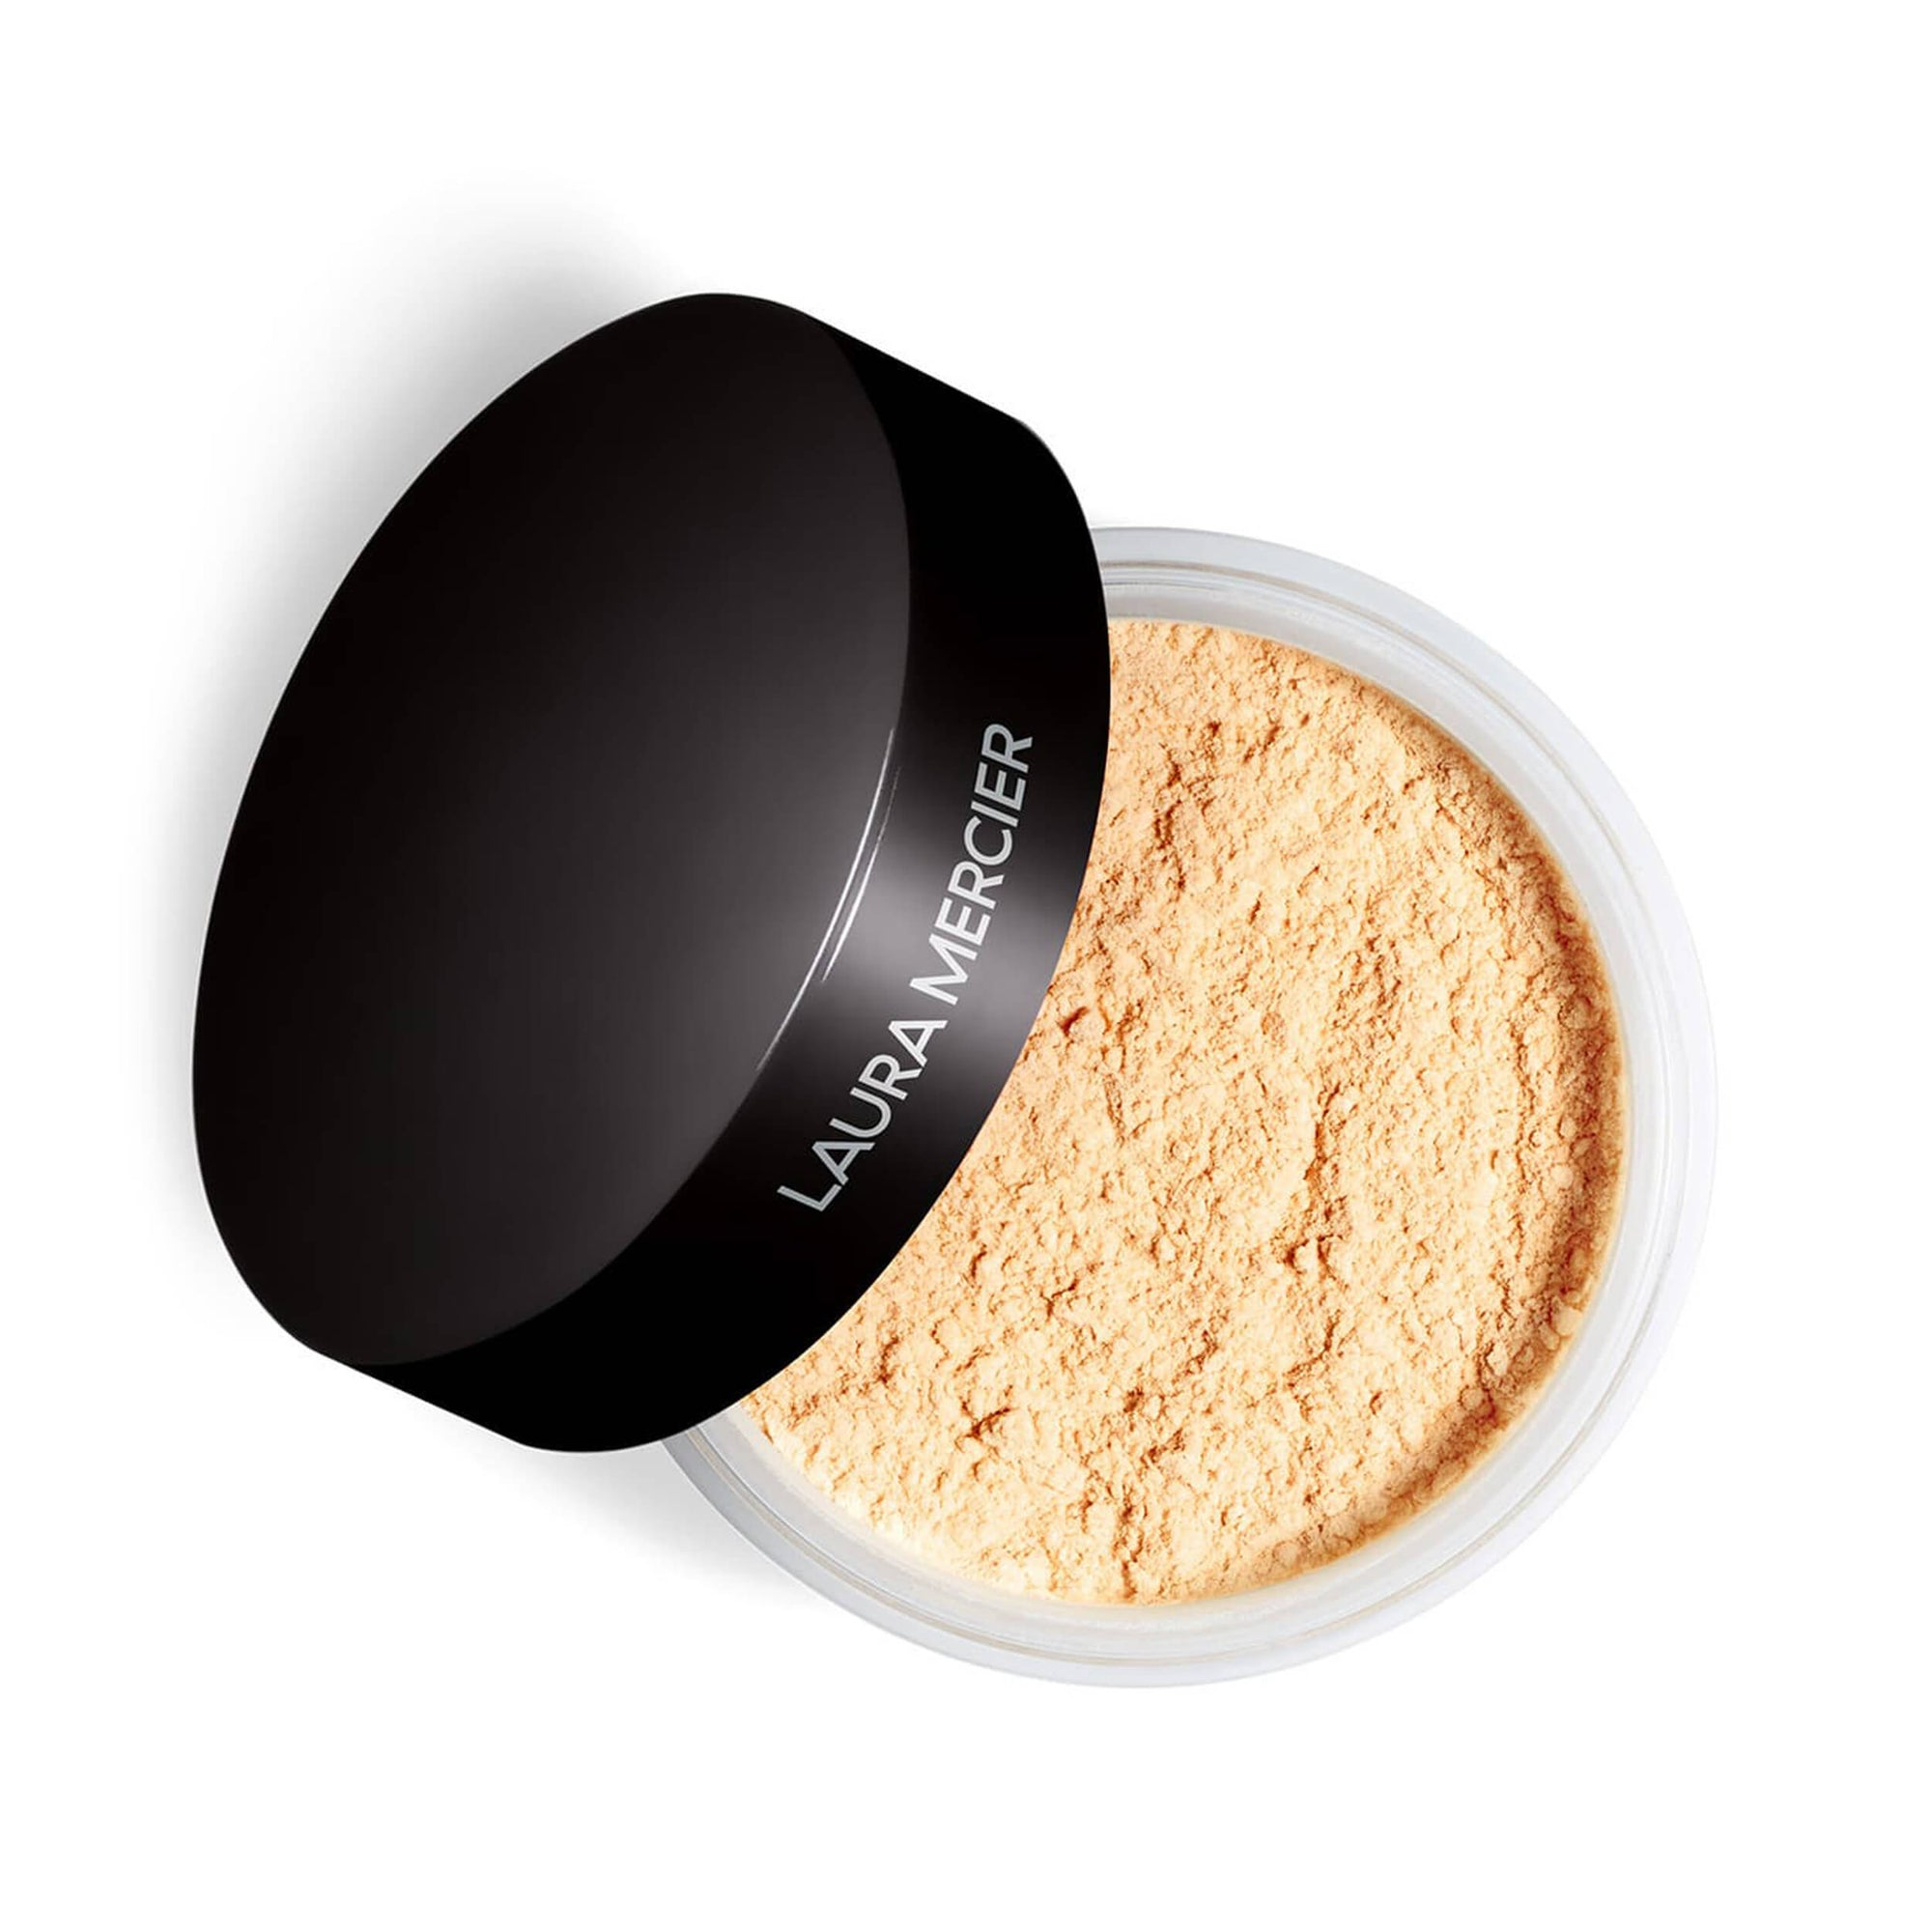 Laura Mercier Loose Setting Powder Honey